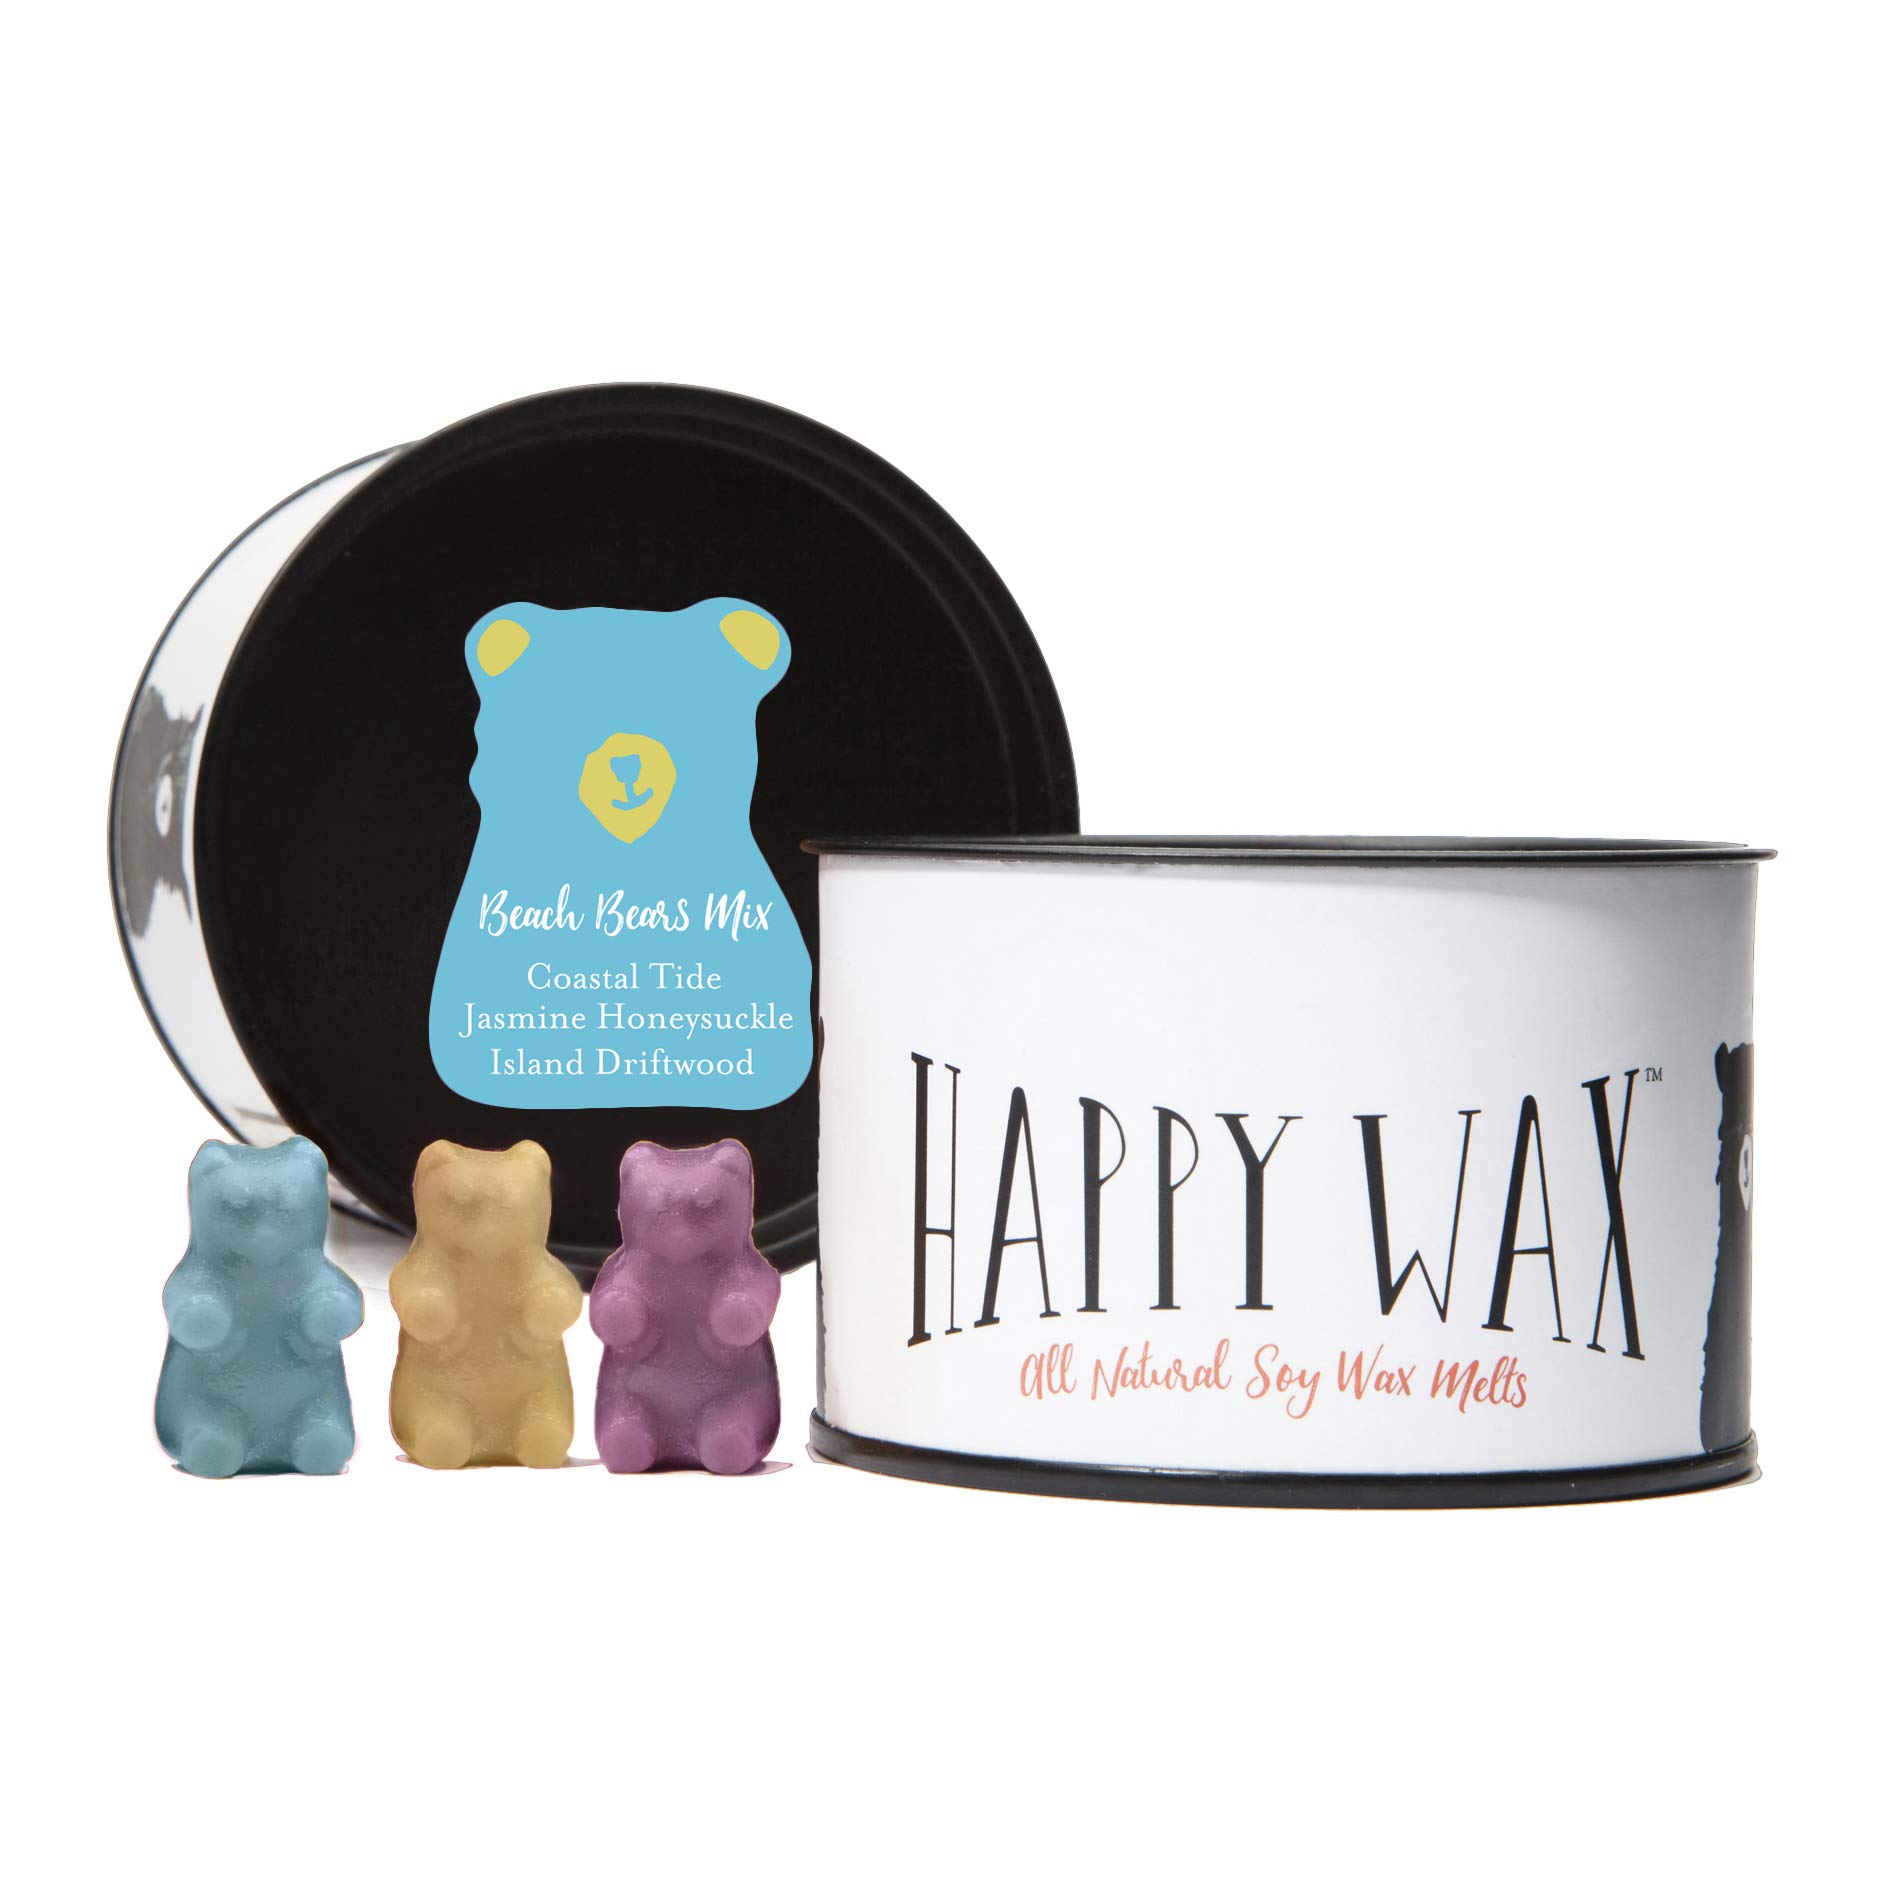 Happy Wax - Four Mixed Tins Wax Melt Sampler Gift Set - Includes 3.6 Oz Each of Our Scented Soy Wax Melts in Our Spa Day Mix, Beach Bears Mix, Citrus Mix, and Fresh Mix! by Happy Wax (Image #3)